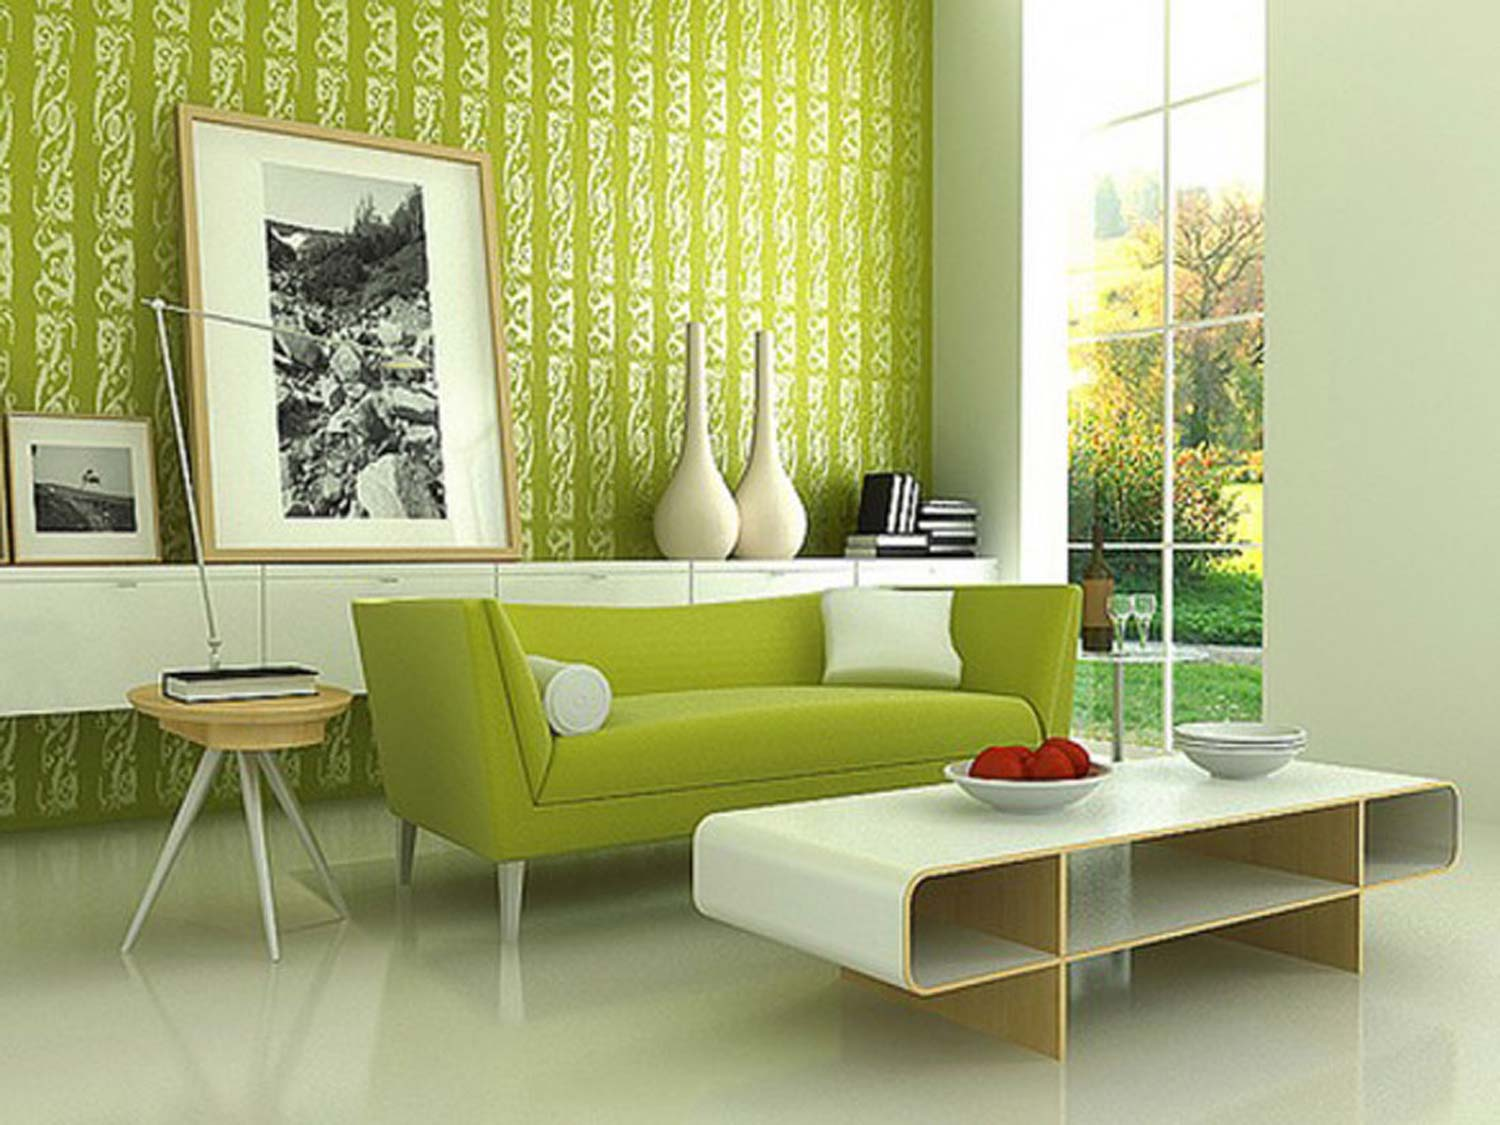 living roomn decorating with ideas for rooms and home decor mint roomeen chairs color sage rugs set wallpaper green accent tables full size room cool small foyer table inside door